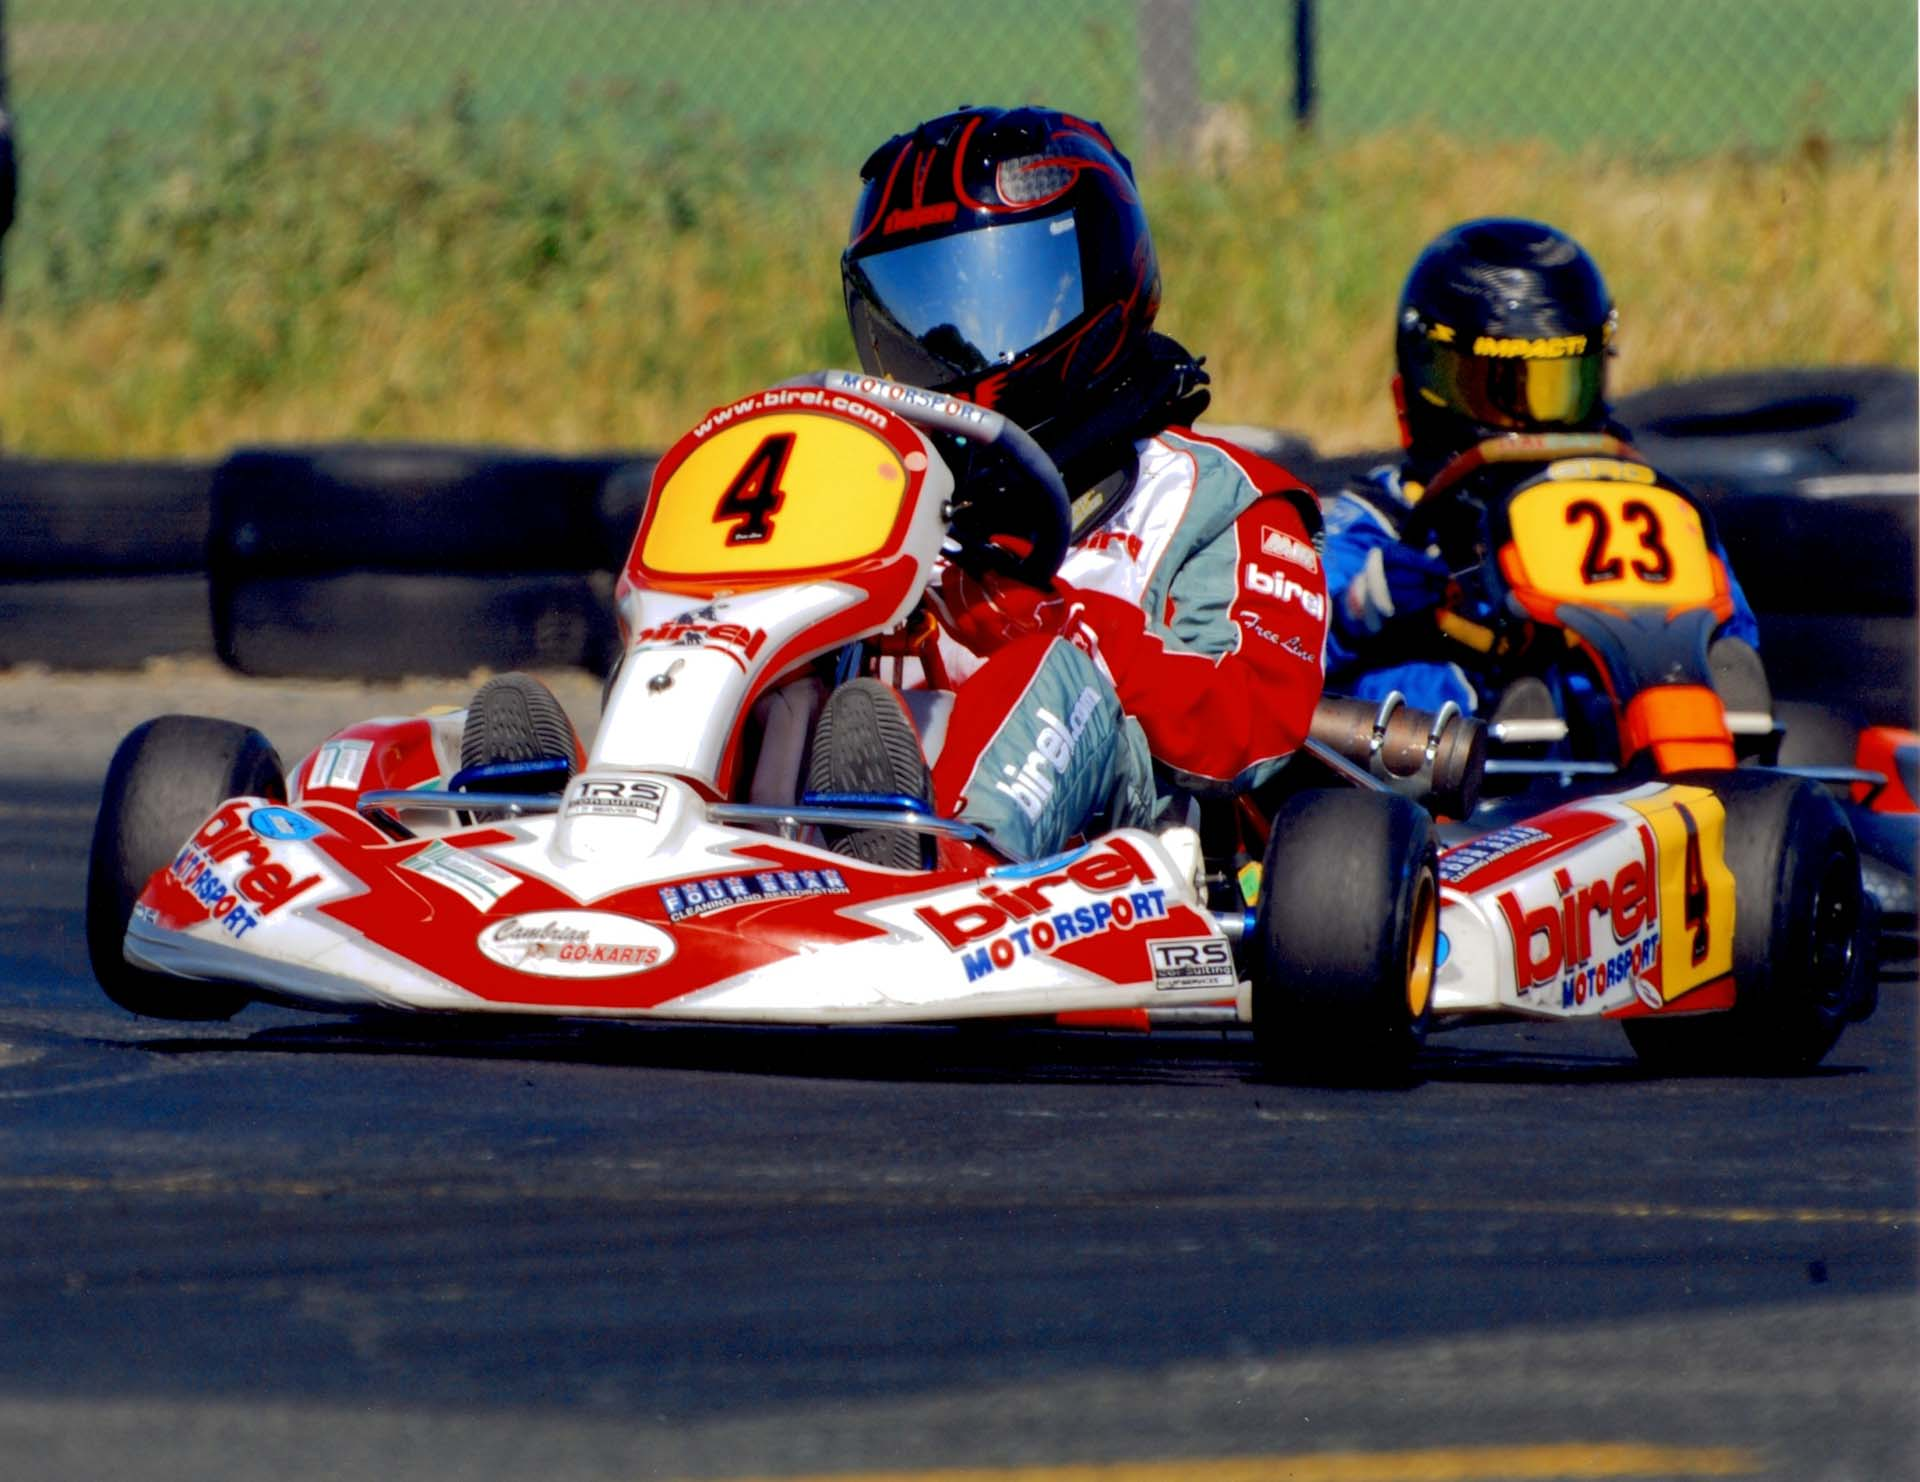 Infenion Rotax Race 1